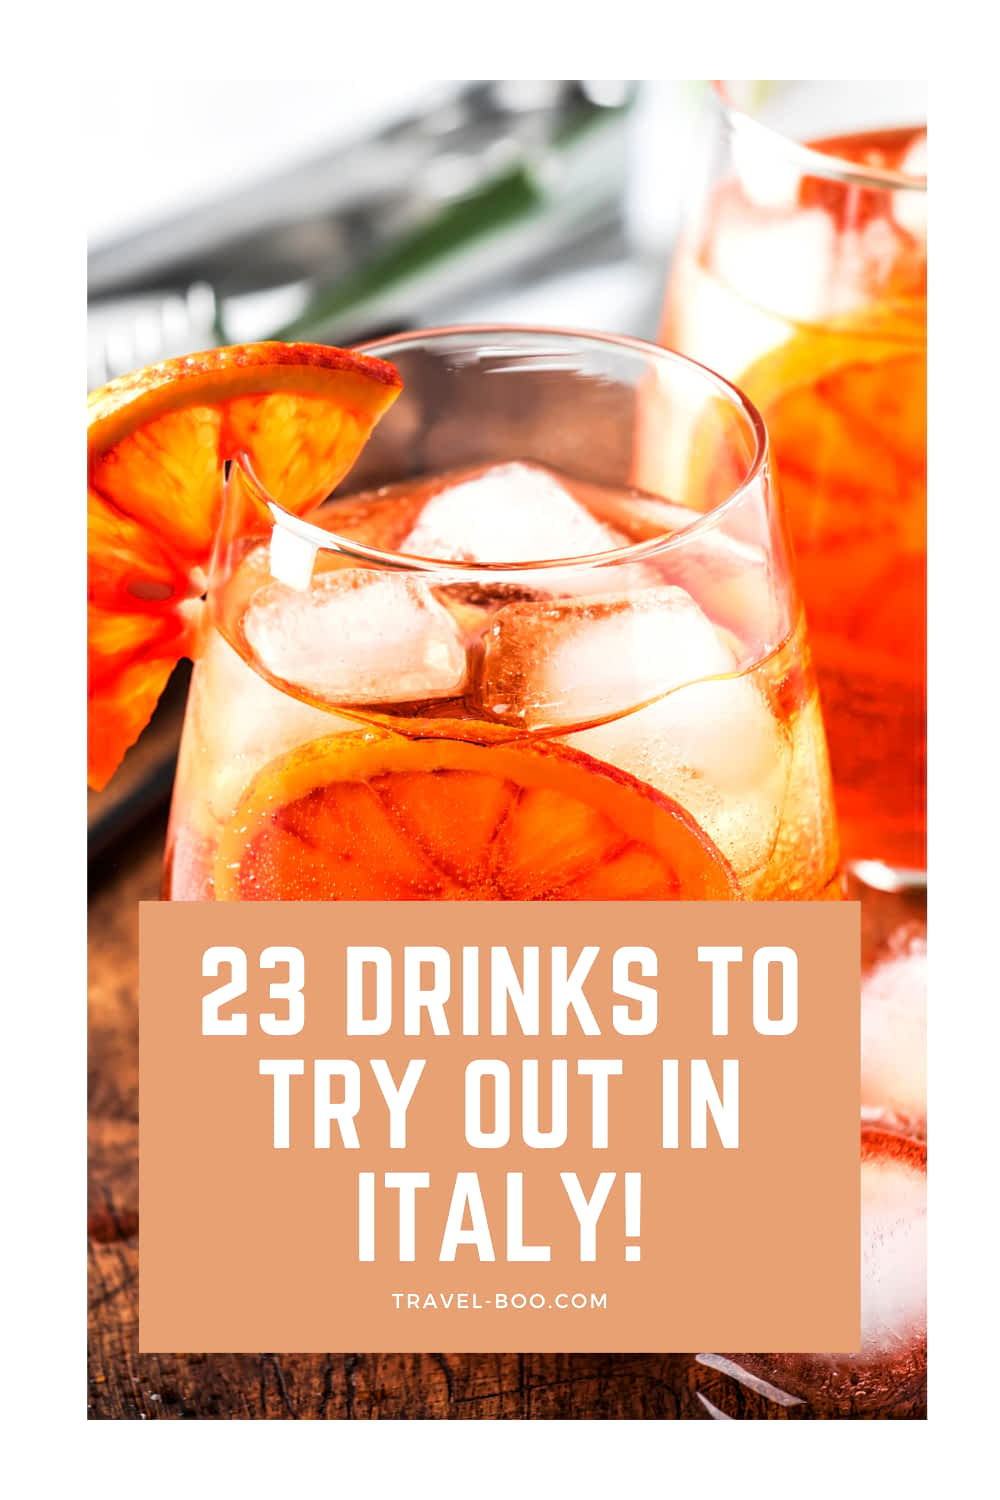 23 Italian Drinks & Beverages You Have to Try Out When Visiting Italy! Italy Travel Guide, Italy Travel, Italian Travel Guide, Italian Drinks, Italy Drinks Guide, What to Drink in Italy. #italytravelguide #italytravel